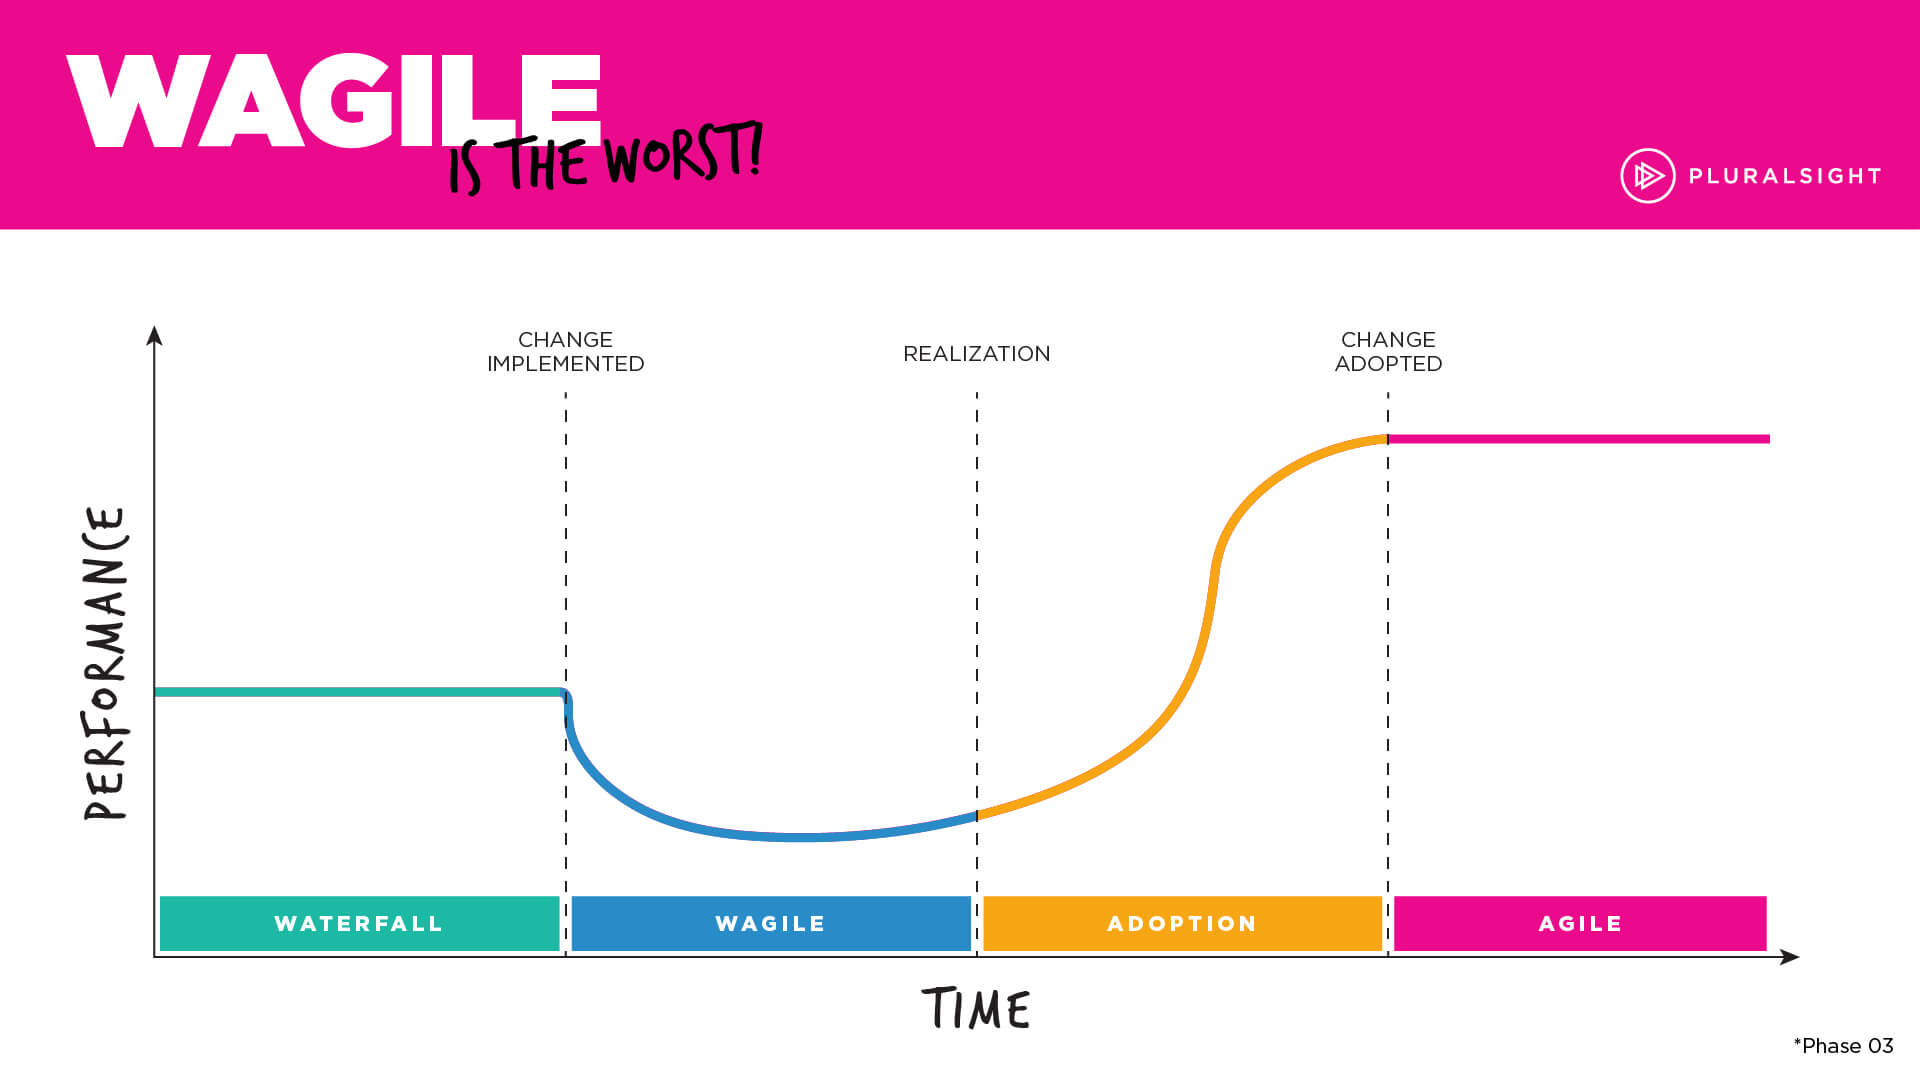 Phase 3: Transition from waterfall to agile